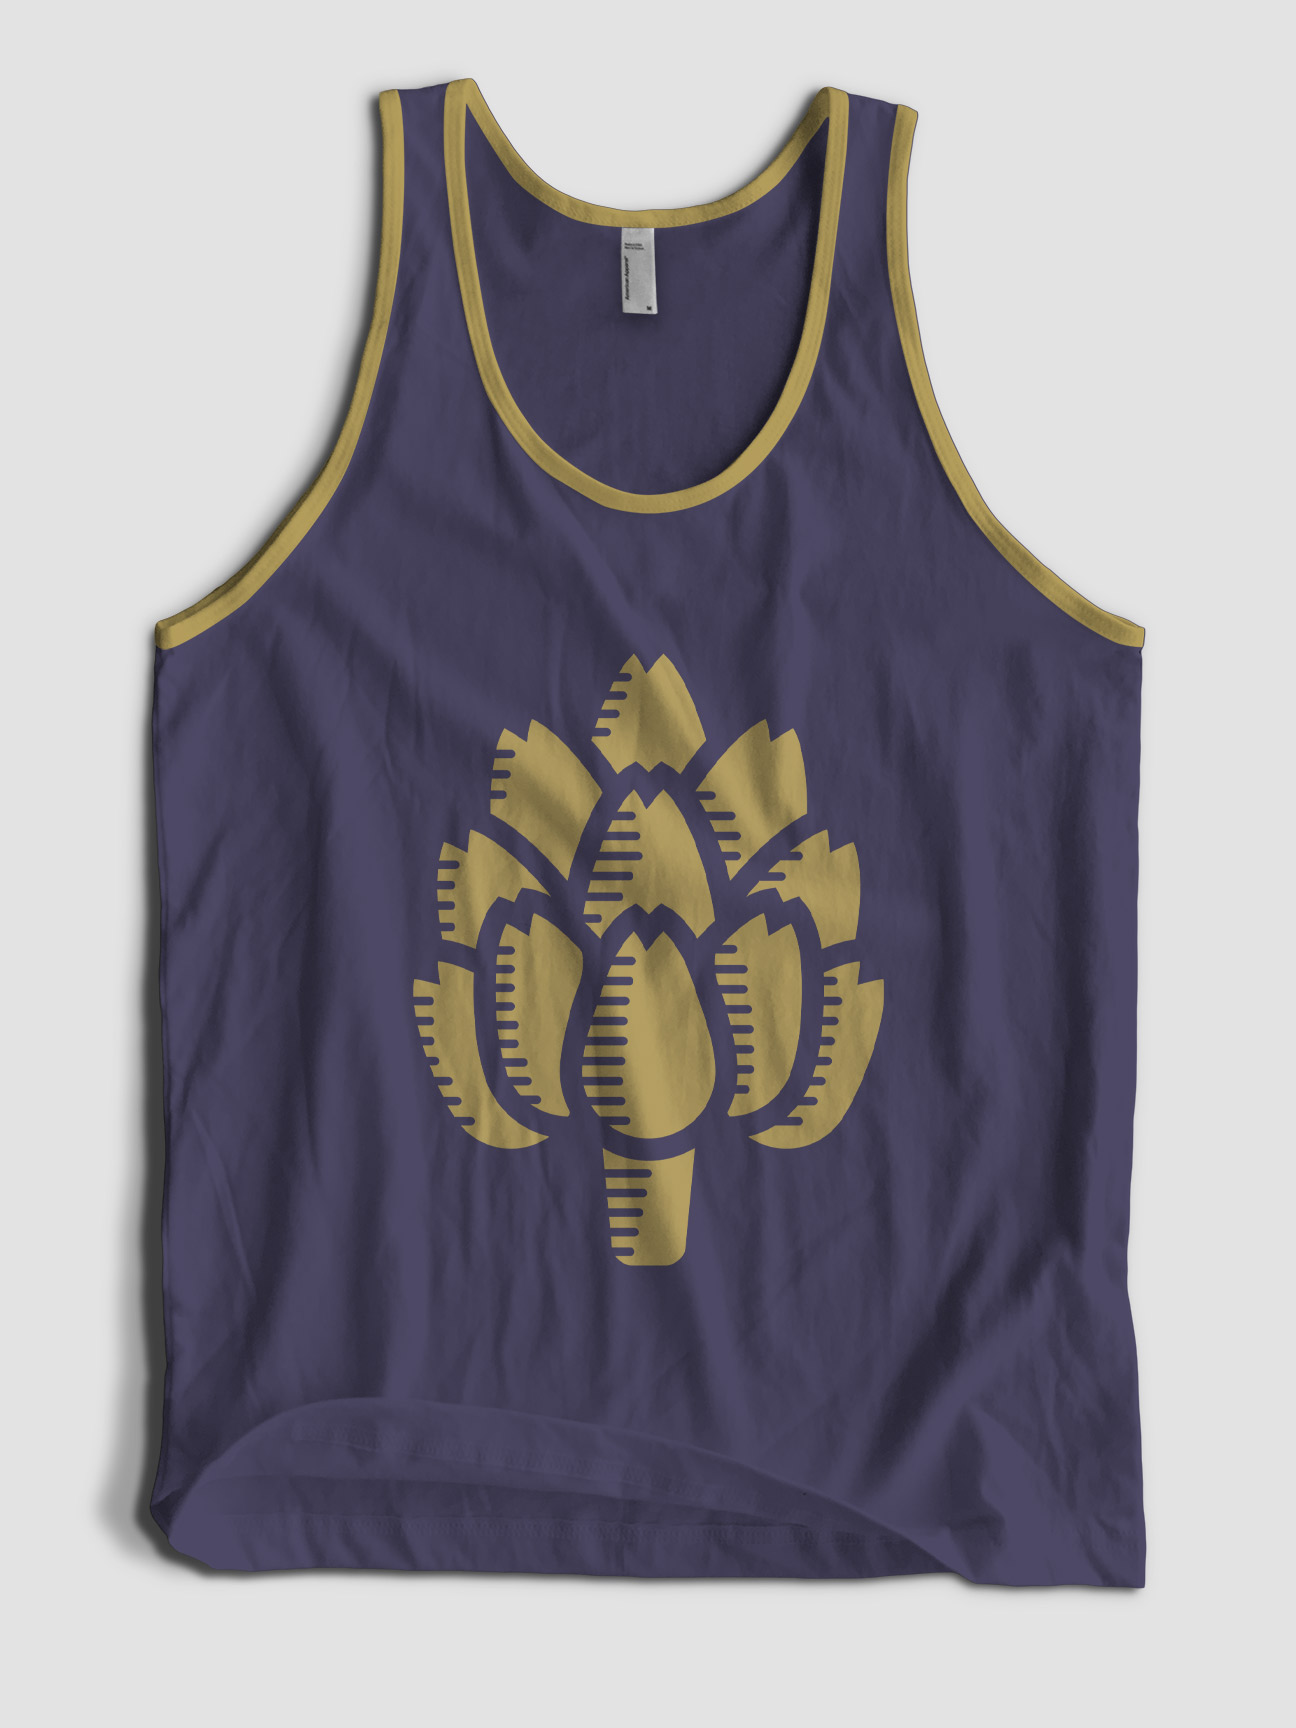 All Heart Tank Top